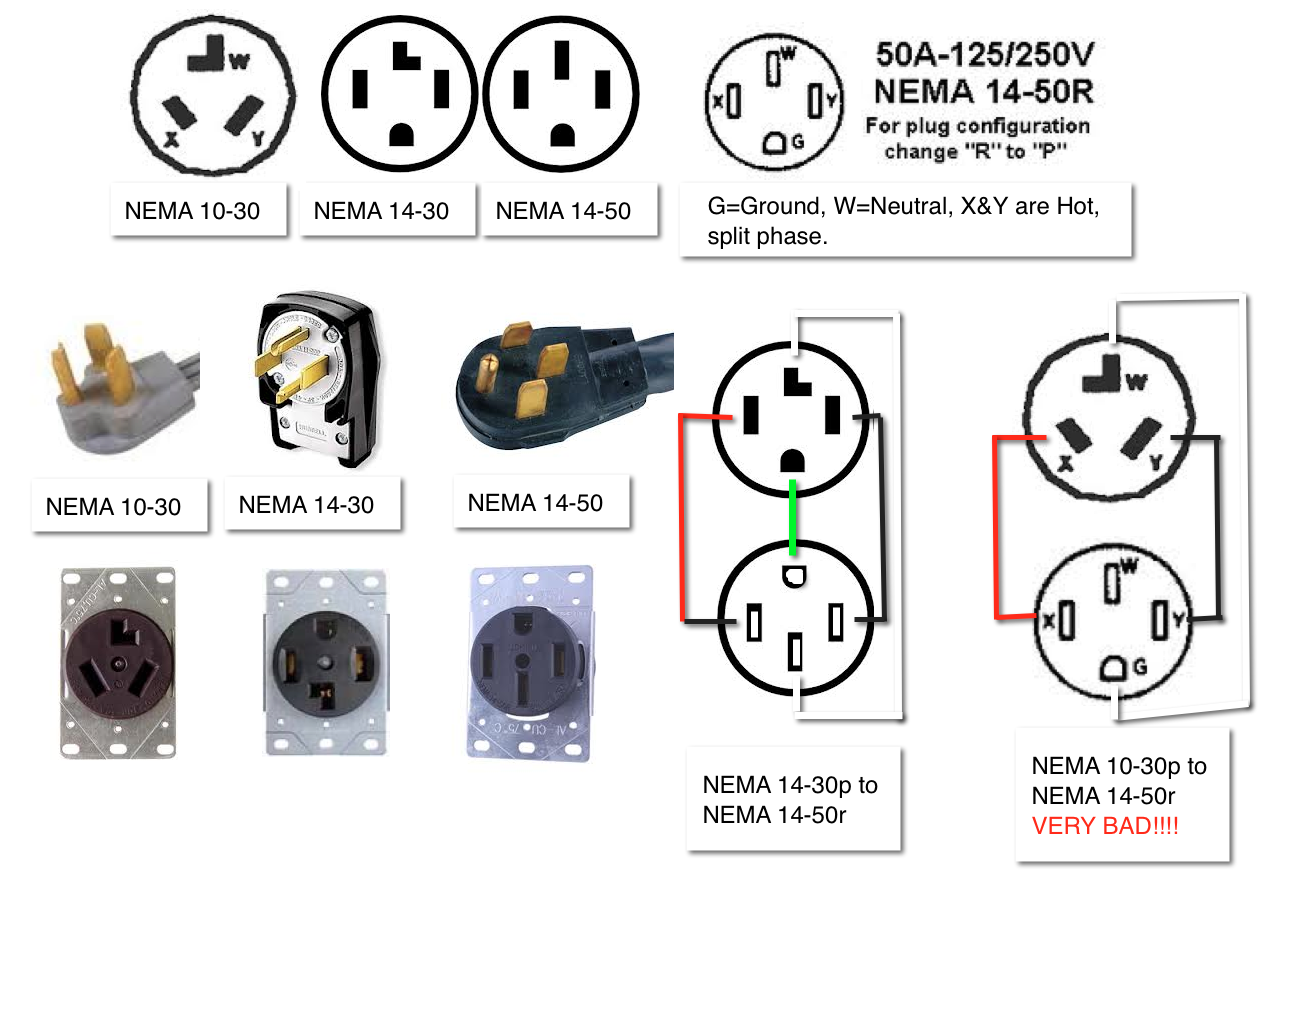 1*R2rsS8MMOiVwm86jrHzveg what should you know before you buy a tesla george everitt medium nema 14-50 outlet wiring diagram at edmiracle.co